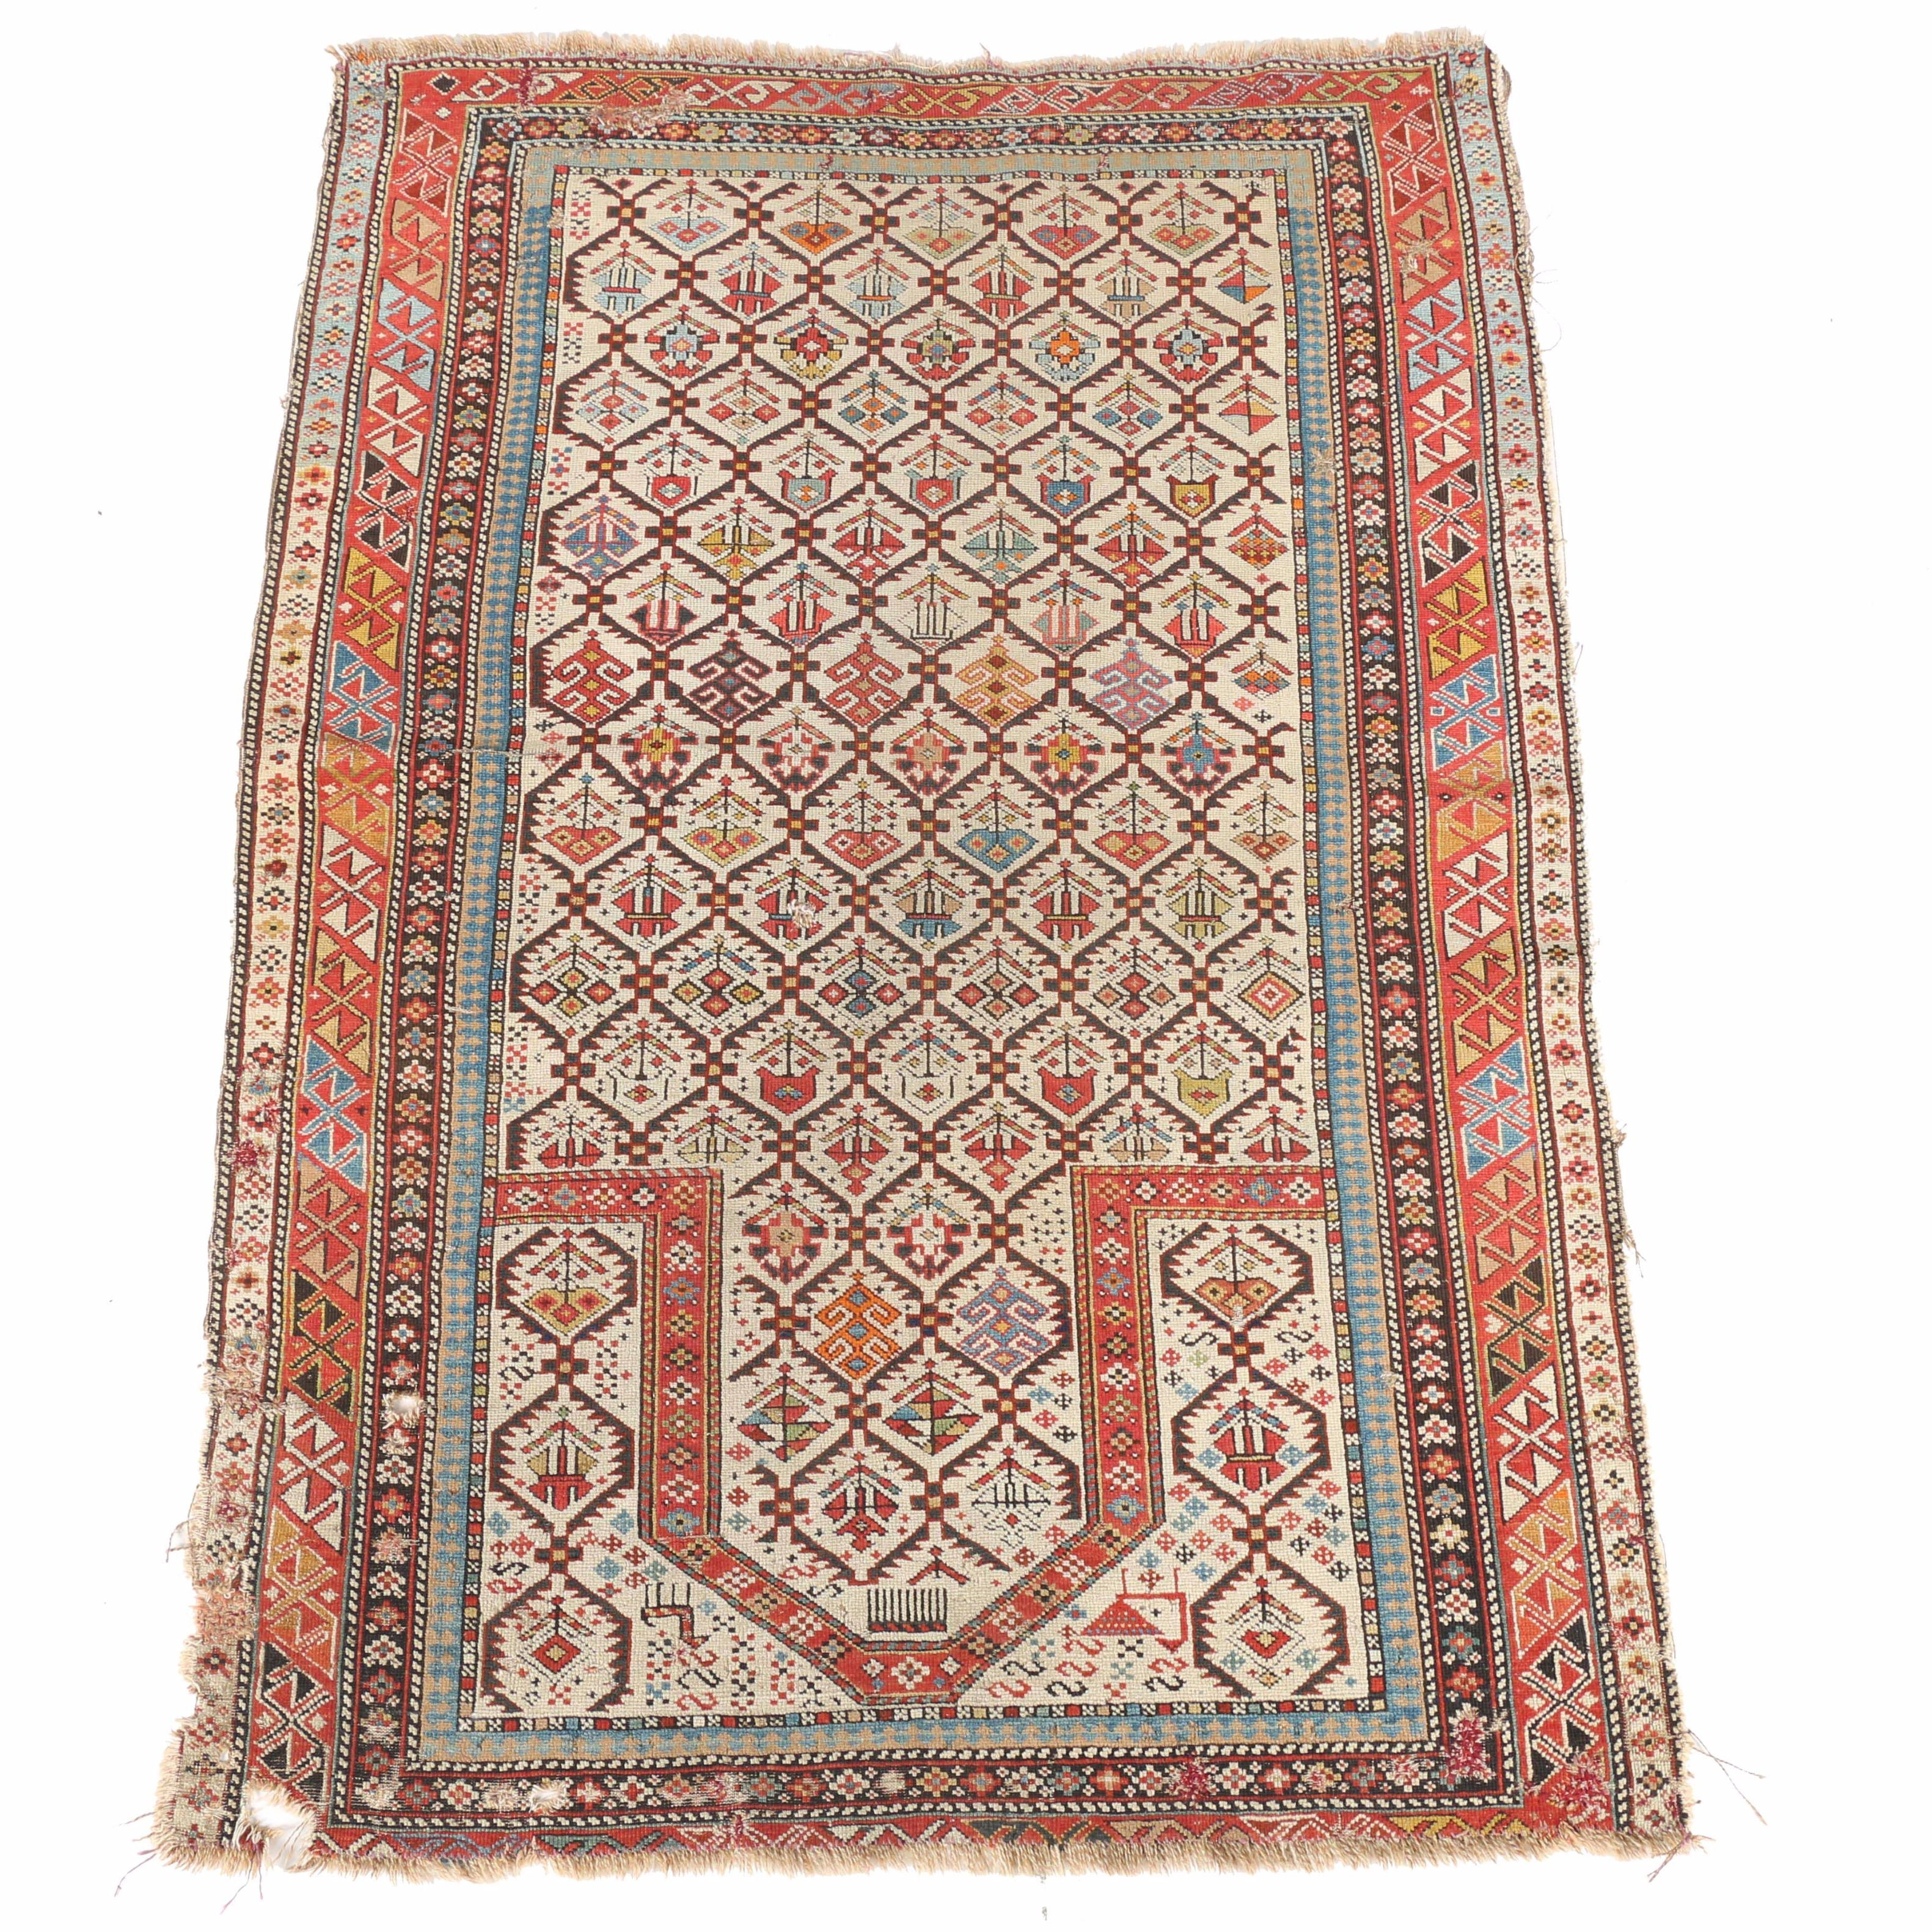 Antique Hand-Knotted Shirvan Prayer Rug